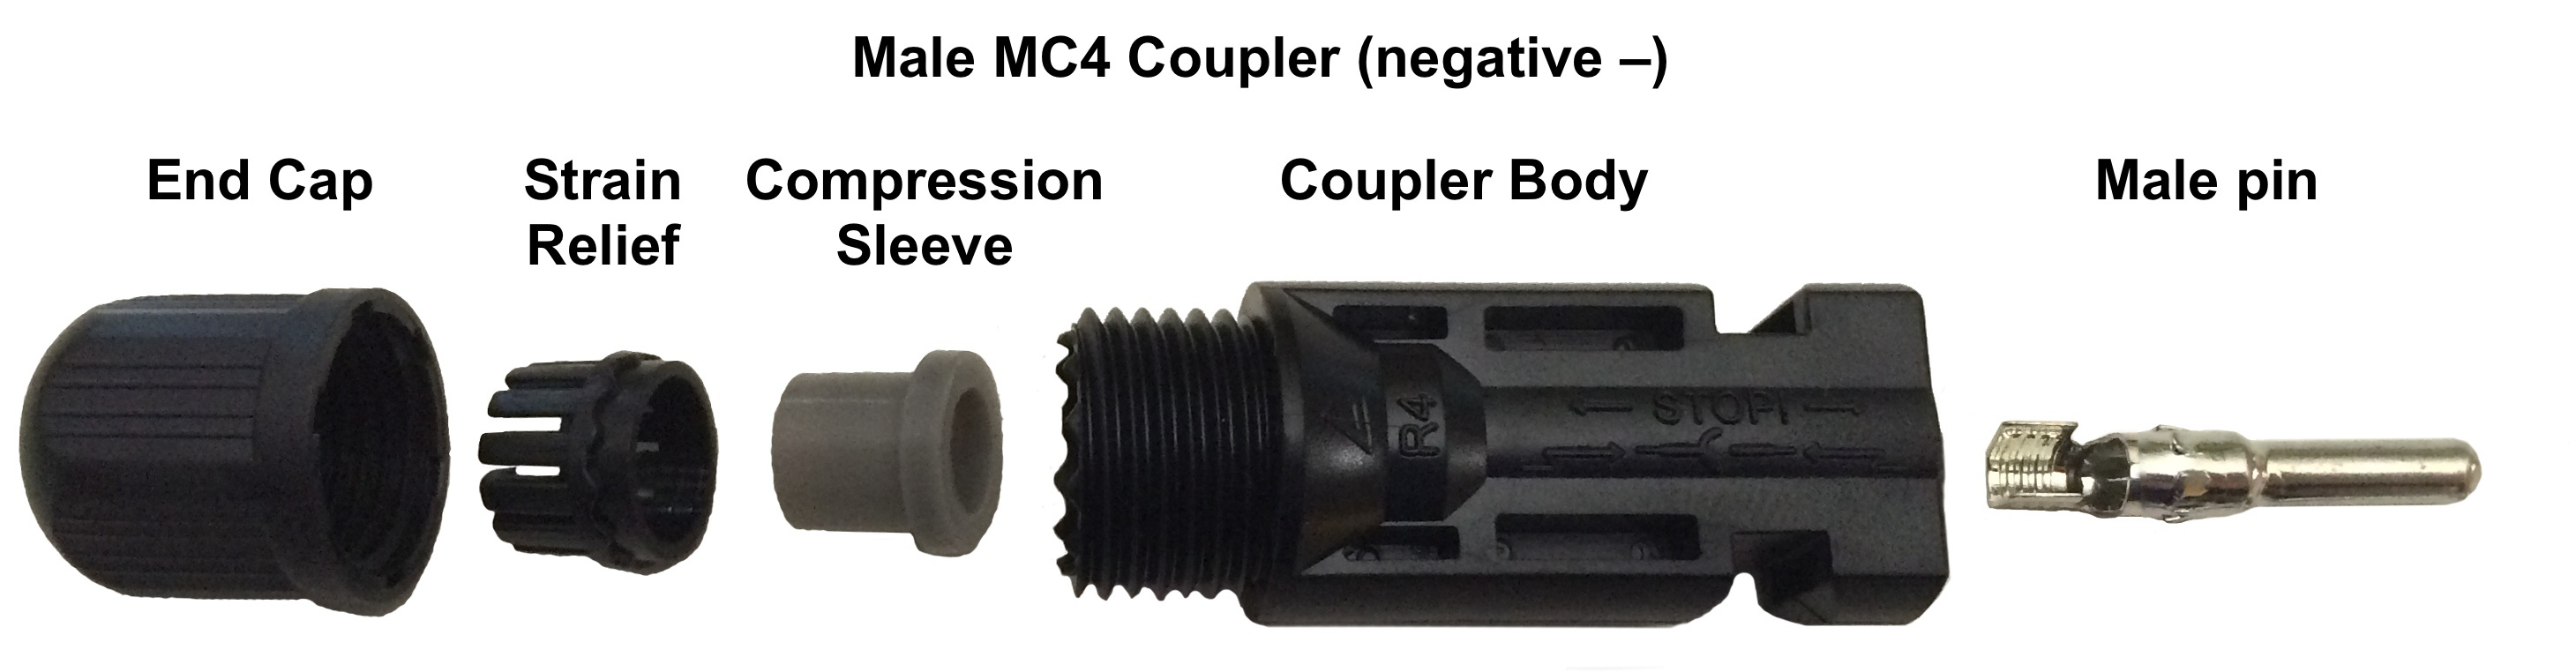 MC4 Male Connector - MC4 Crimp Connectors - Bulk Male - Pack of 20 -Bulk MC4 Crimp Connectors - 20 MALE connectors per bag - con-ele, connectors - MC4 Male Connector